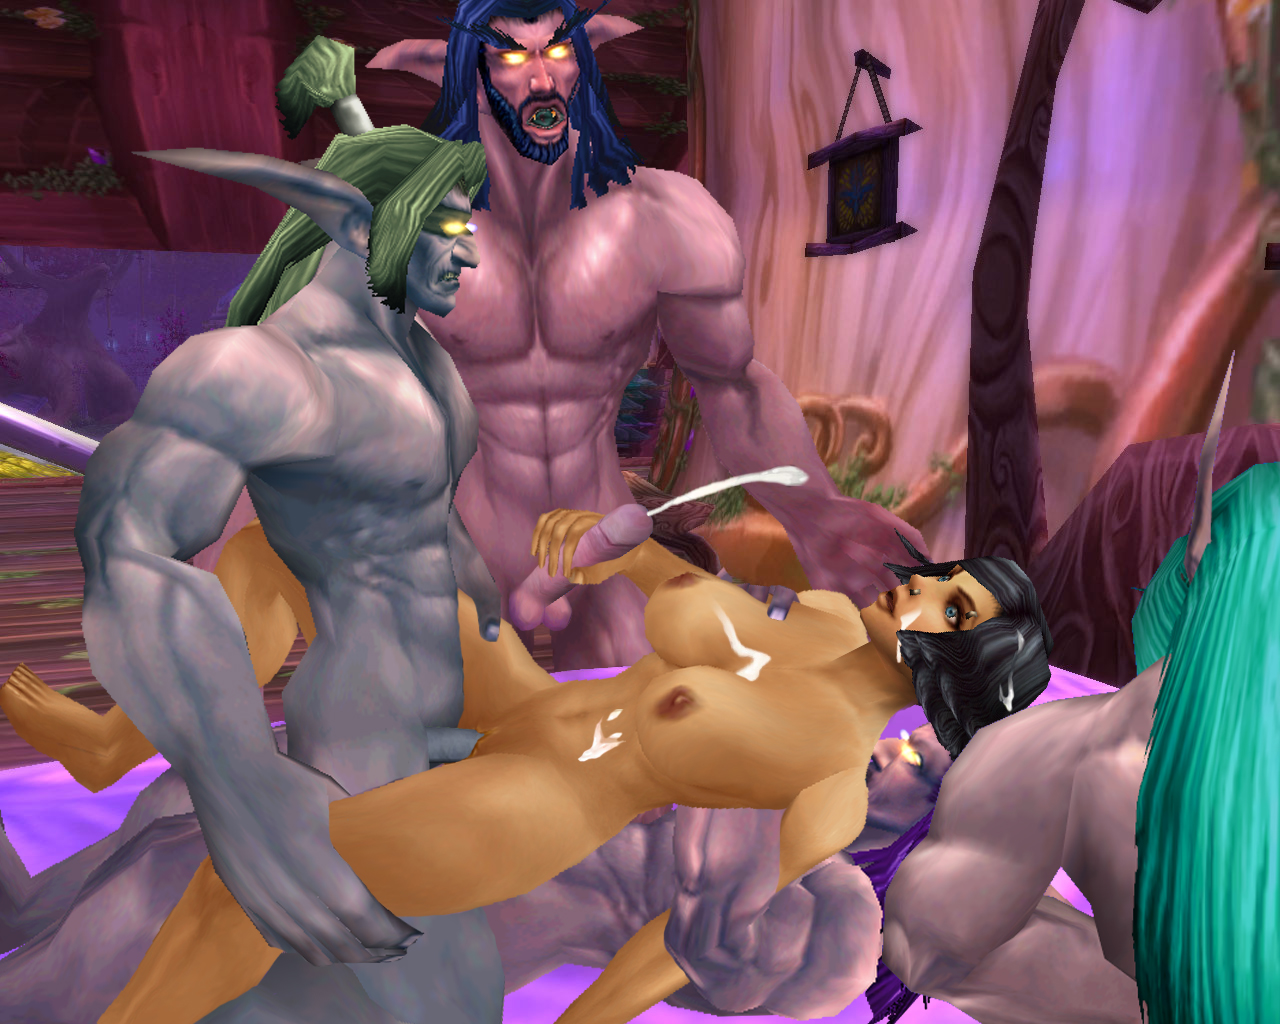 Download porn game in warcraft nsfw film